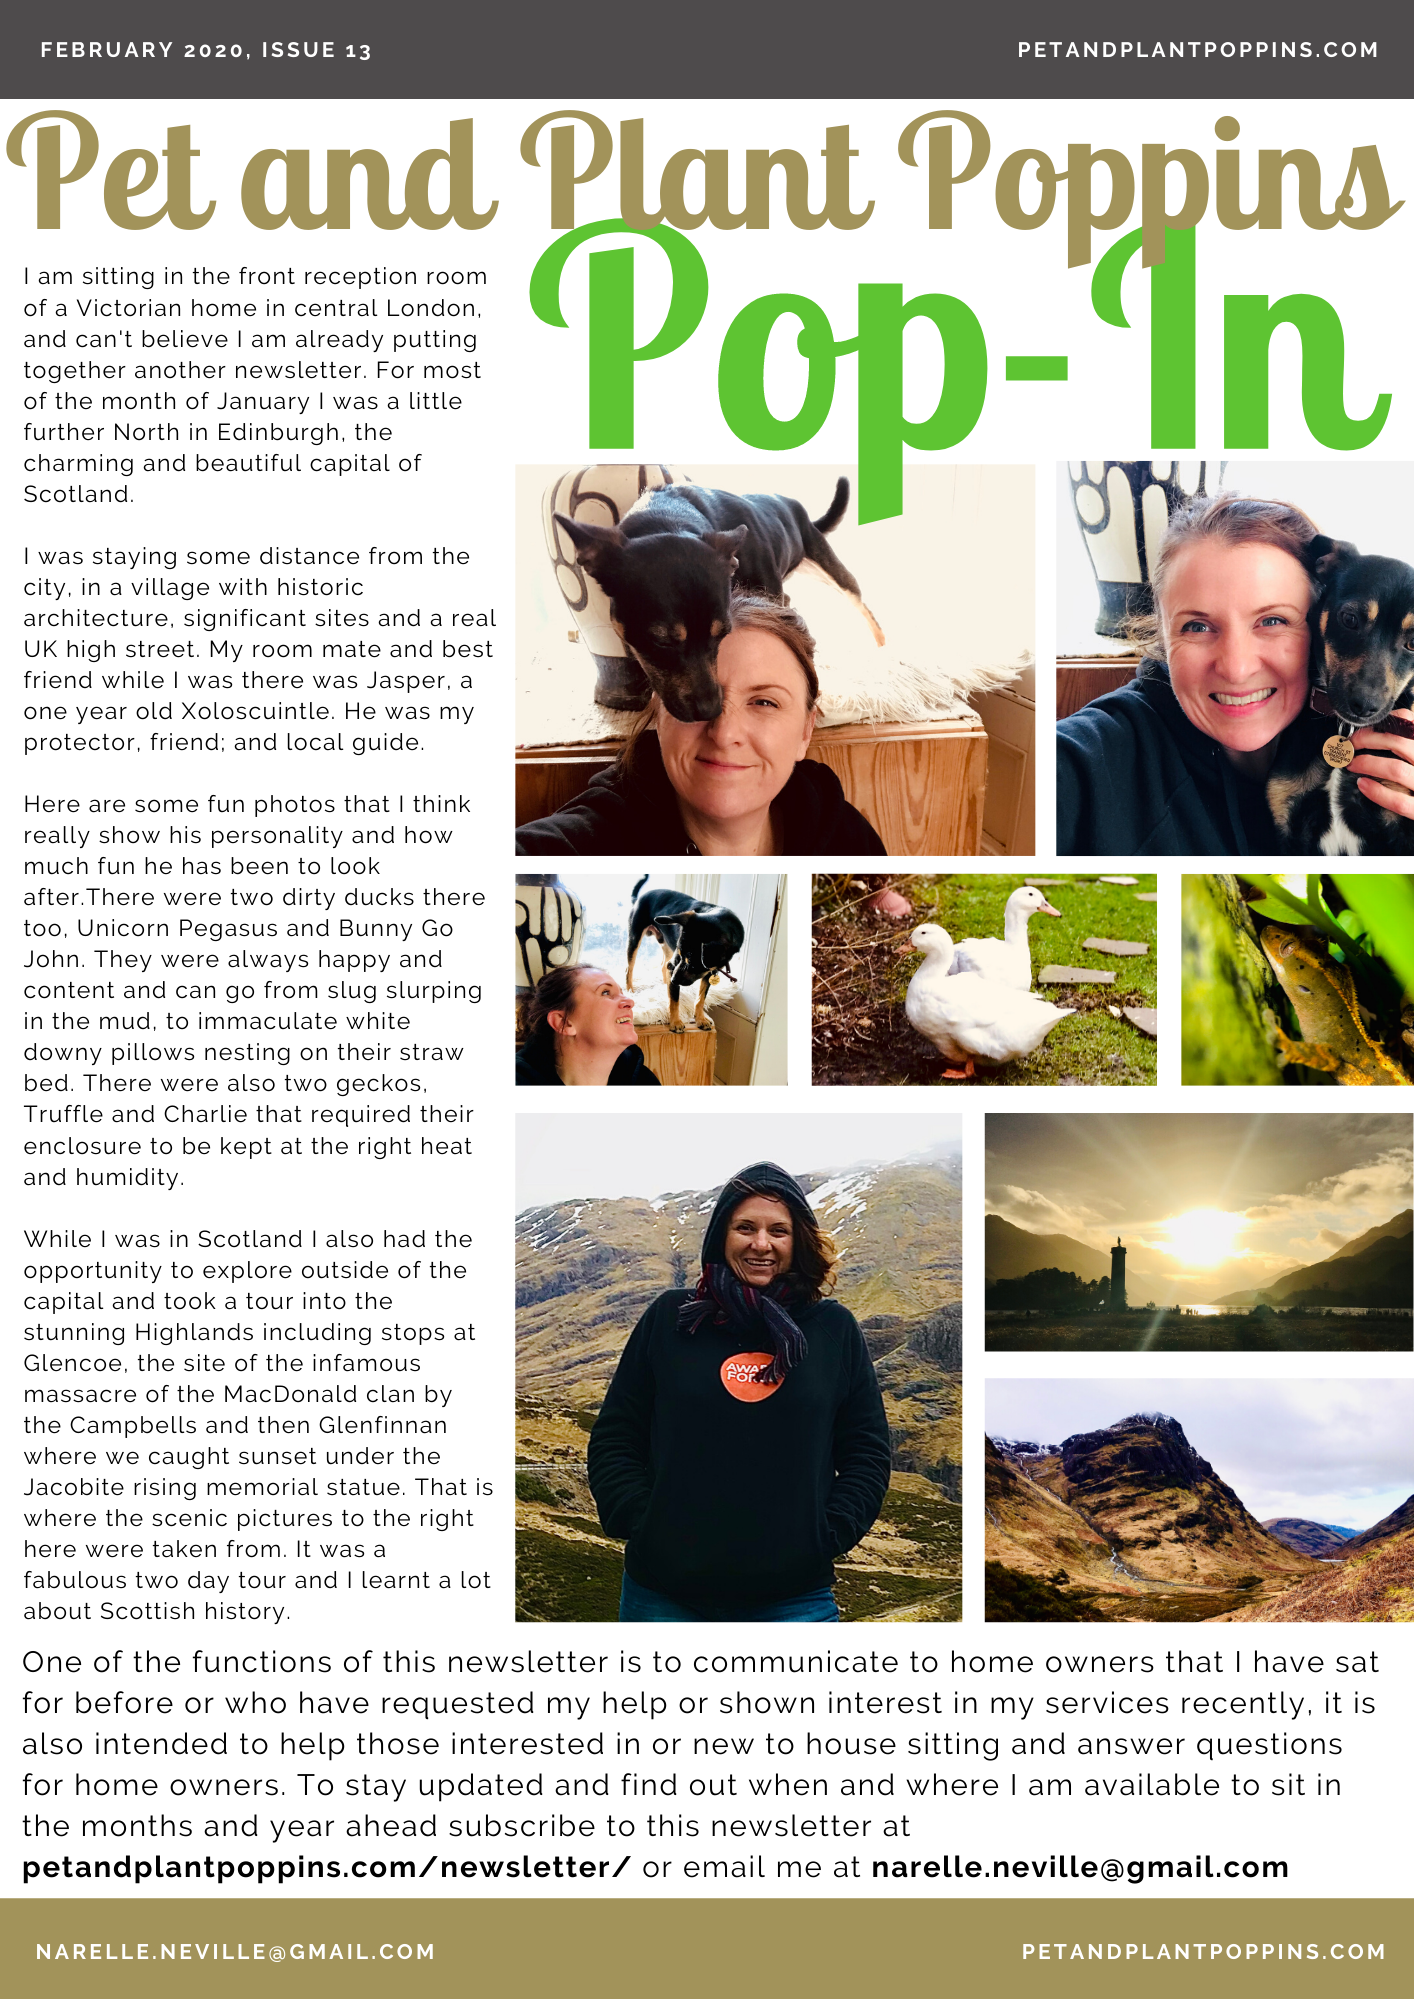 PPP Newsletter February 2020 page 1